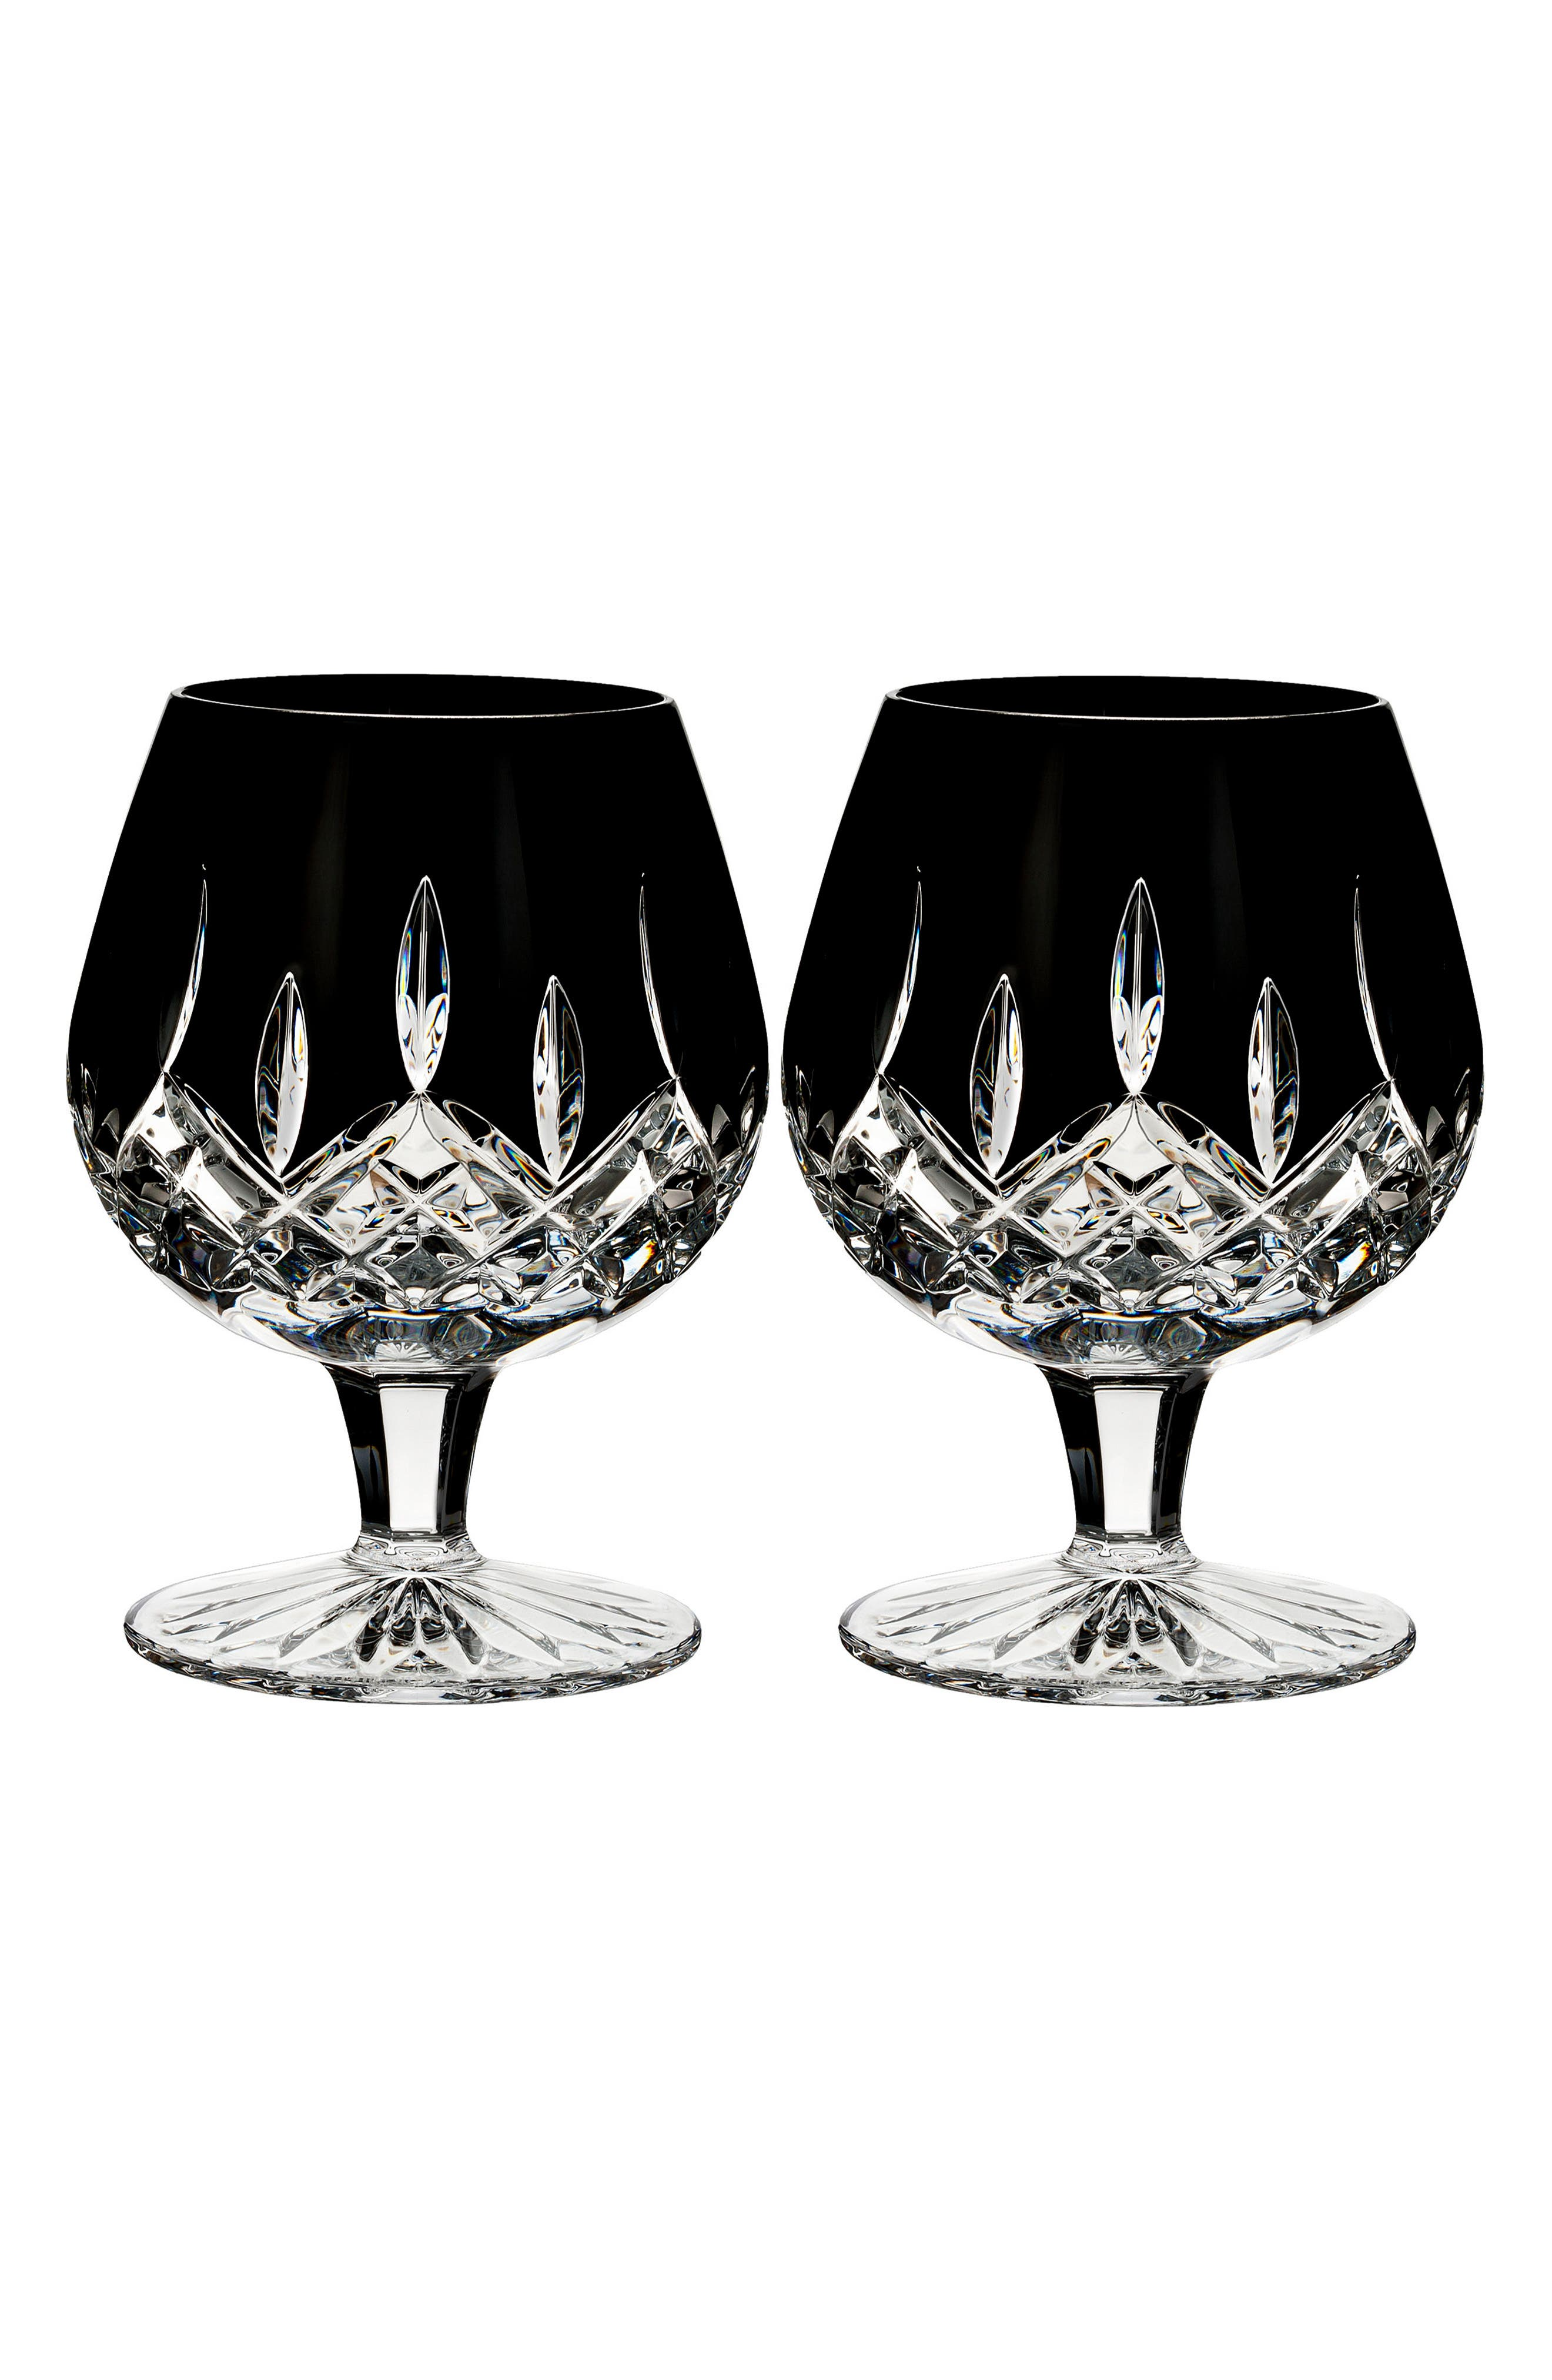 Lismore Diamond Set of 2 Black Lead Crystal Brandy Glasses,                             Main thumbnail 1, color,